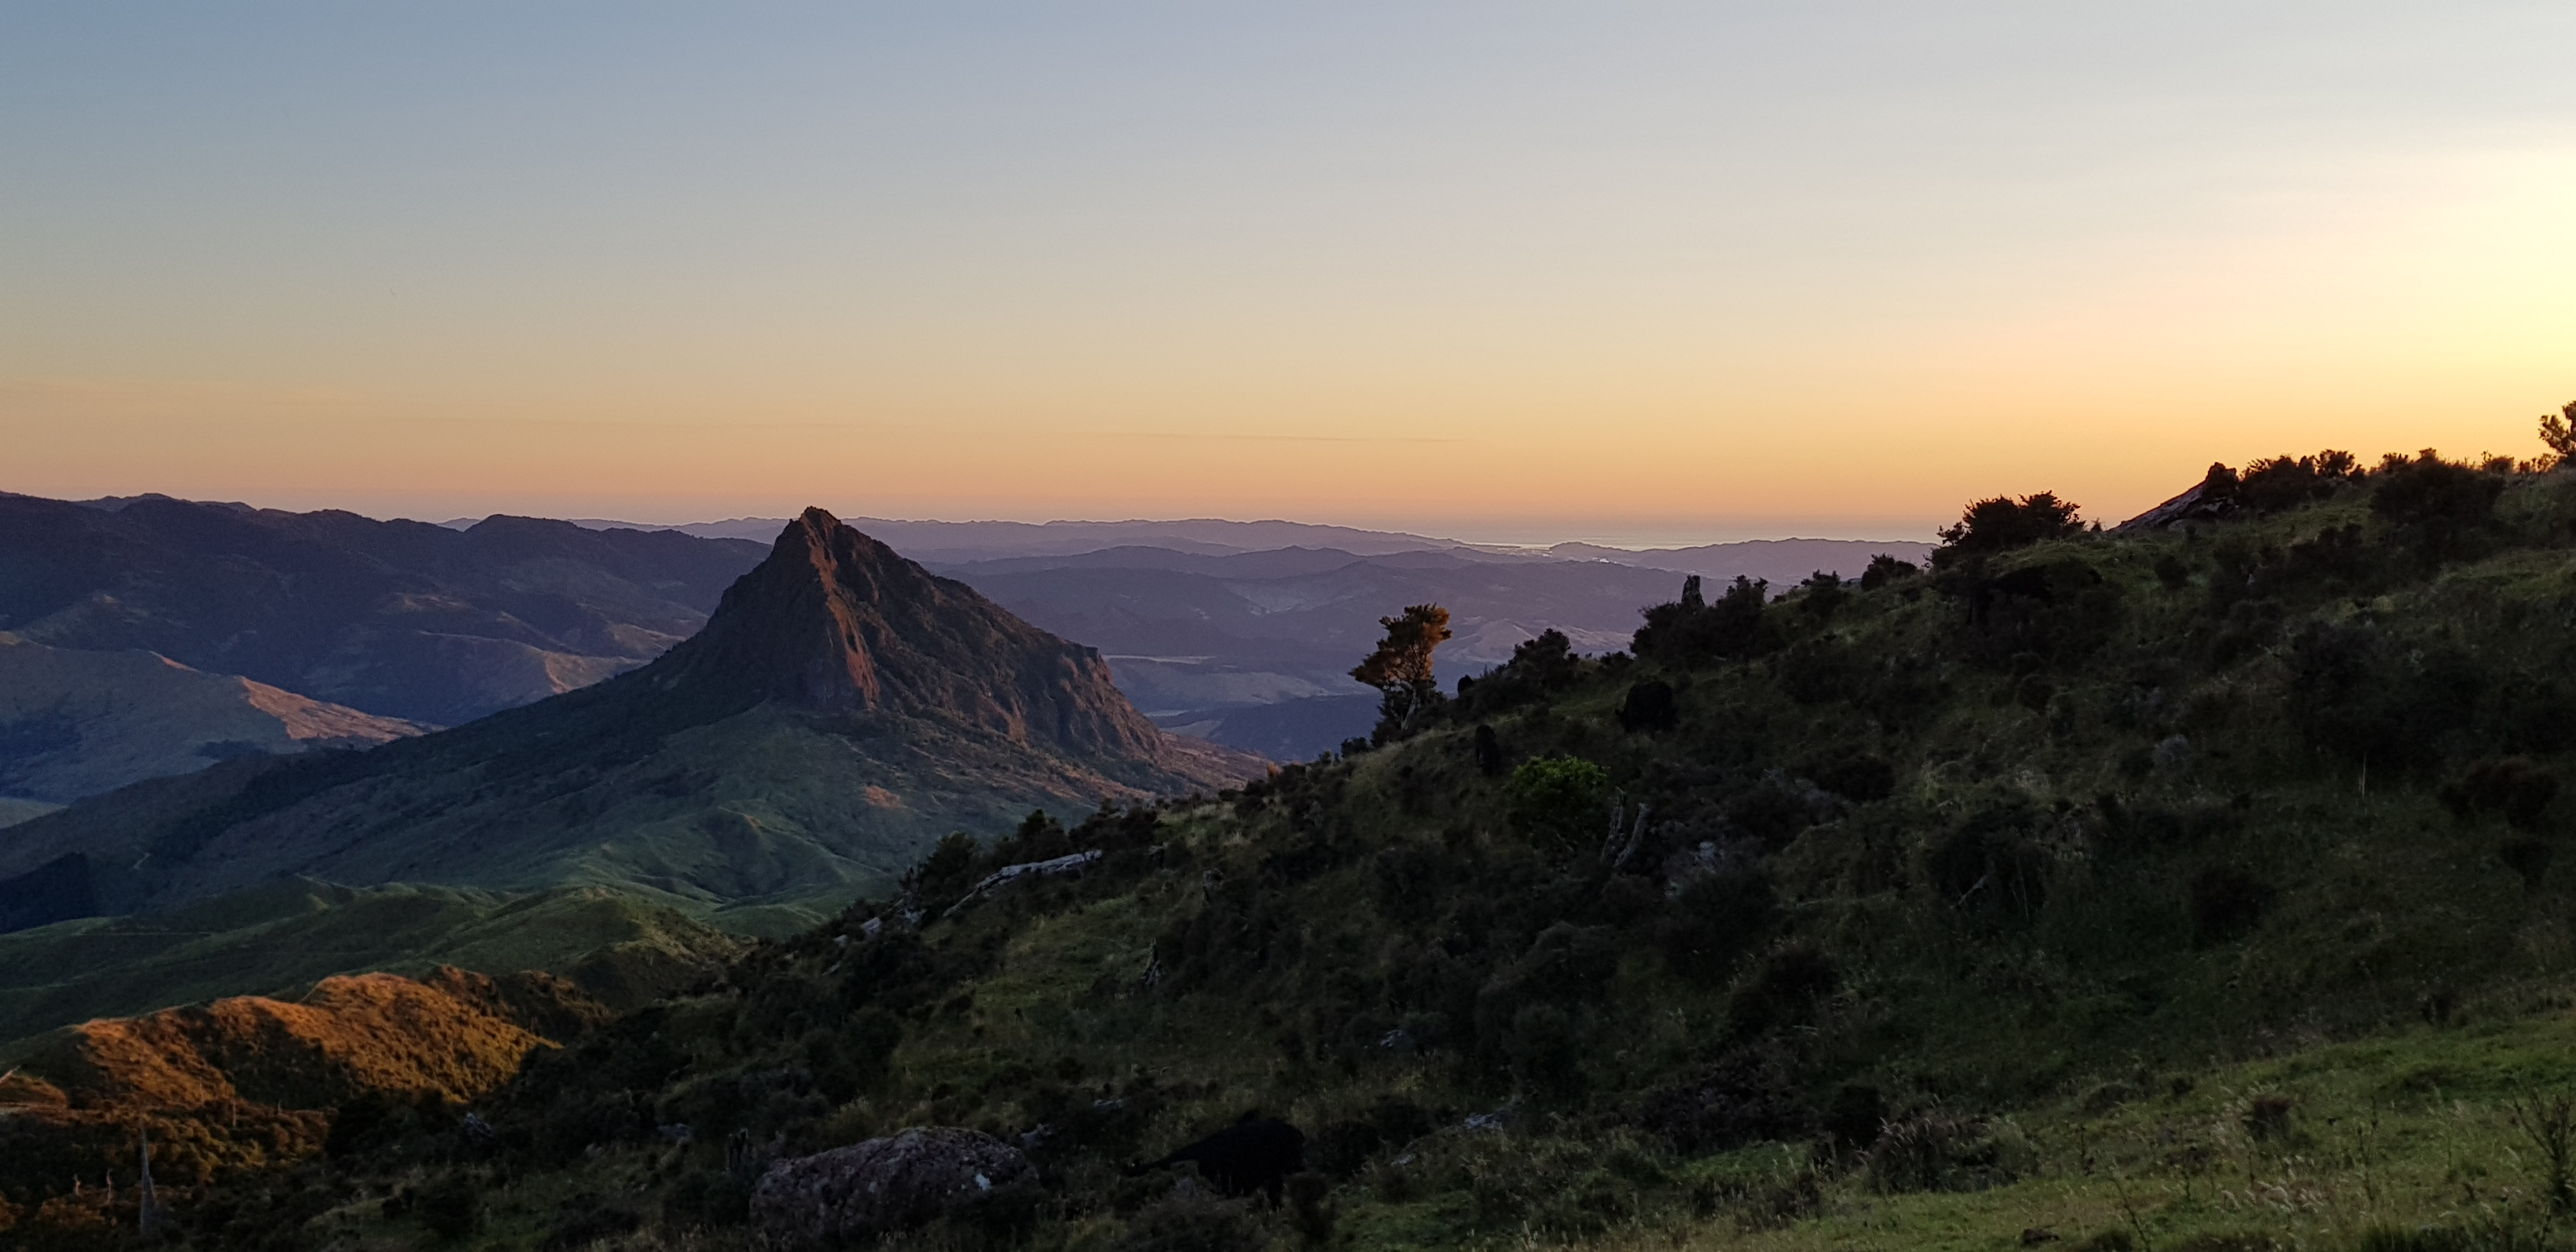 A view of mountain ranges from the top of a mountain at sunset. There is a sharp, pointy mountain near the middle of the photo.